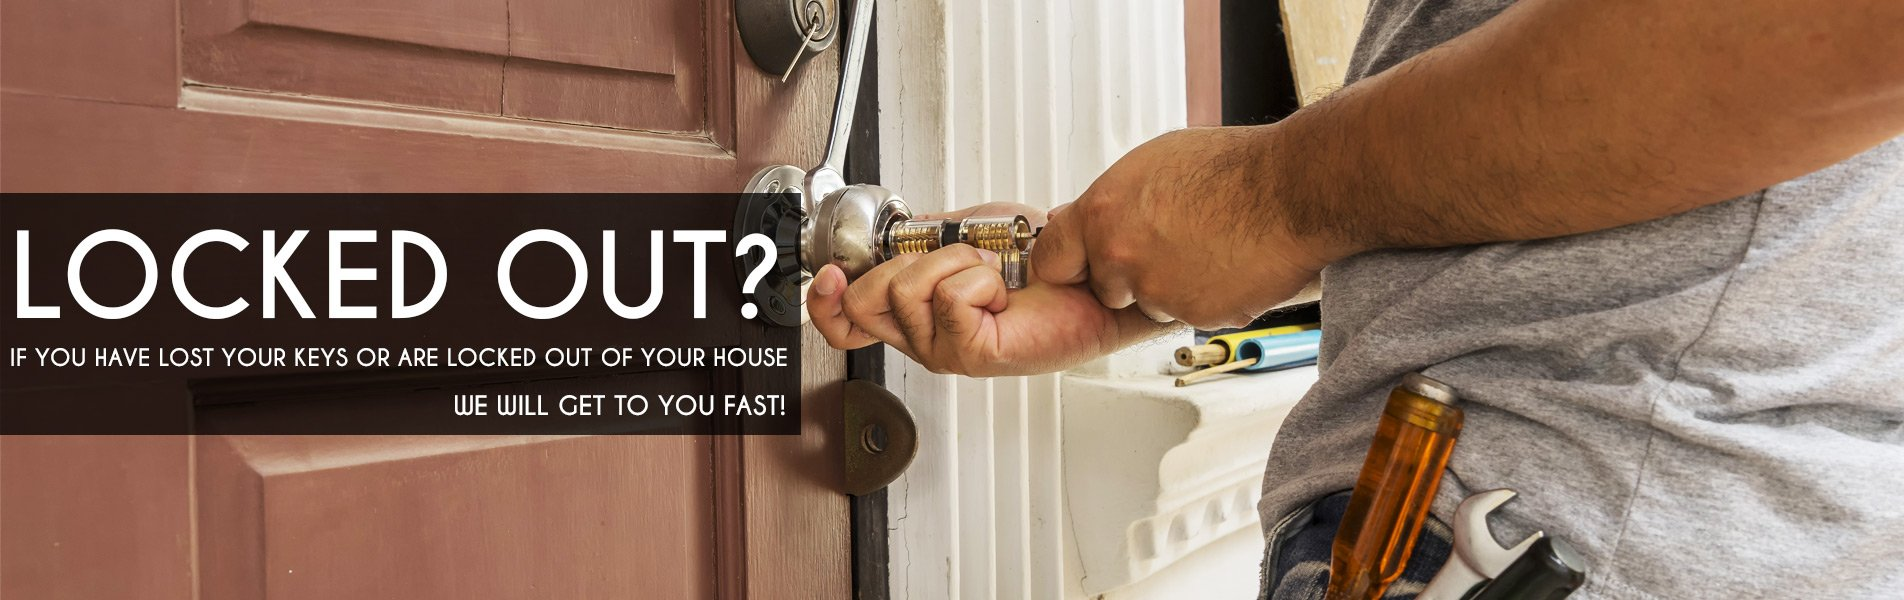 West New York NJ Locksmith Store West New York, NJ 201-630-6995